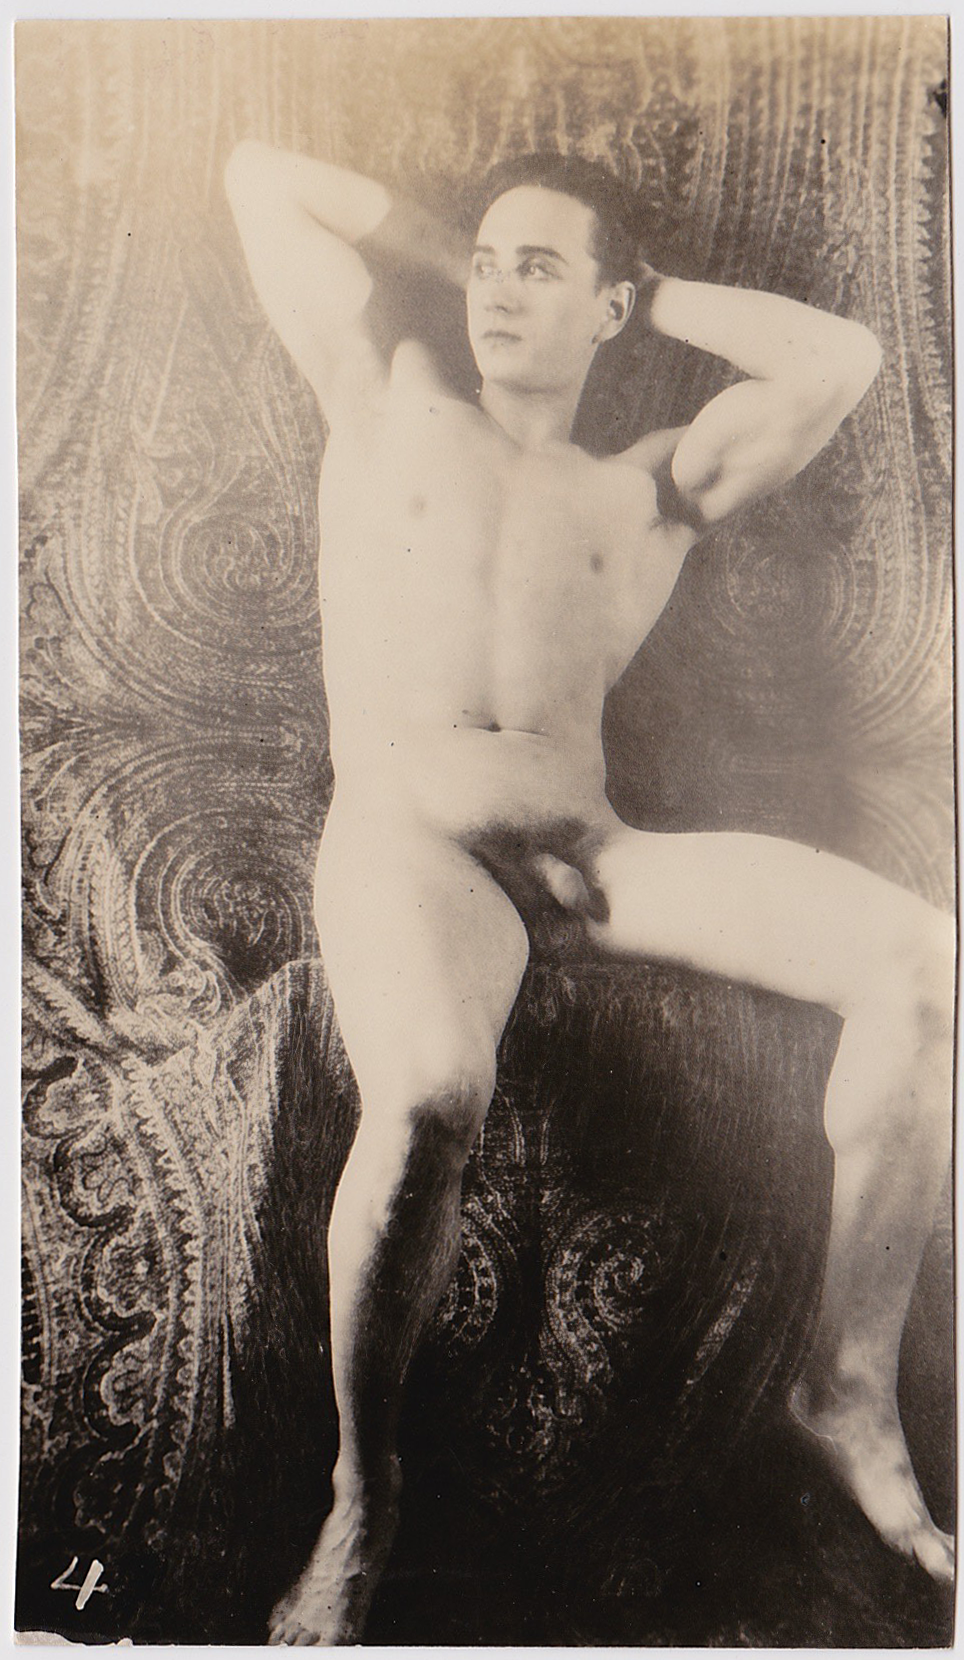 Vintage Physique Photo Male Nude With Paisley Backdrop -6393